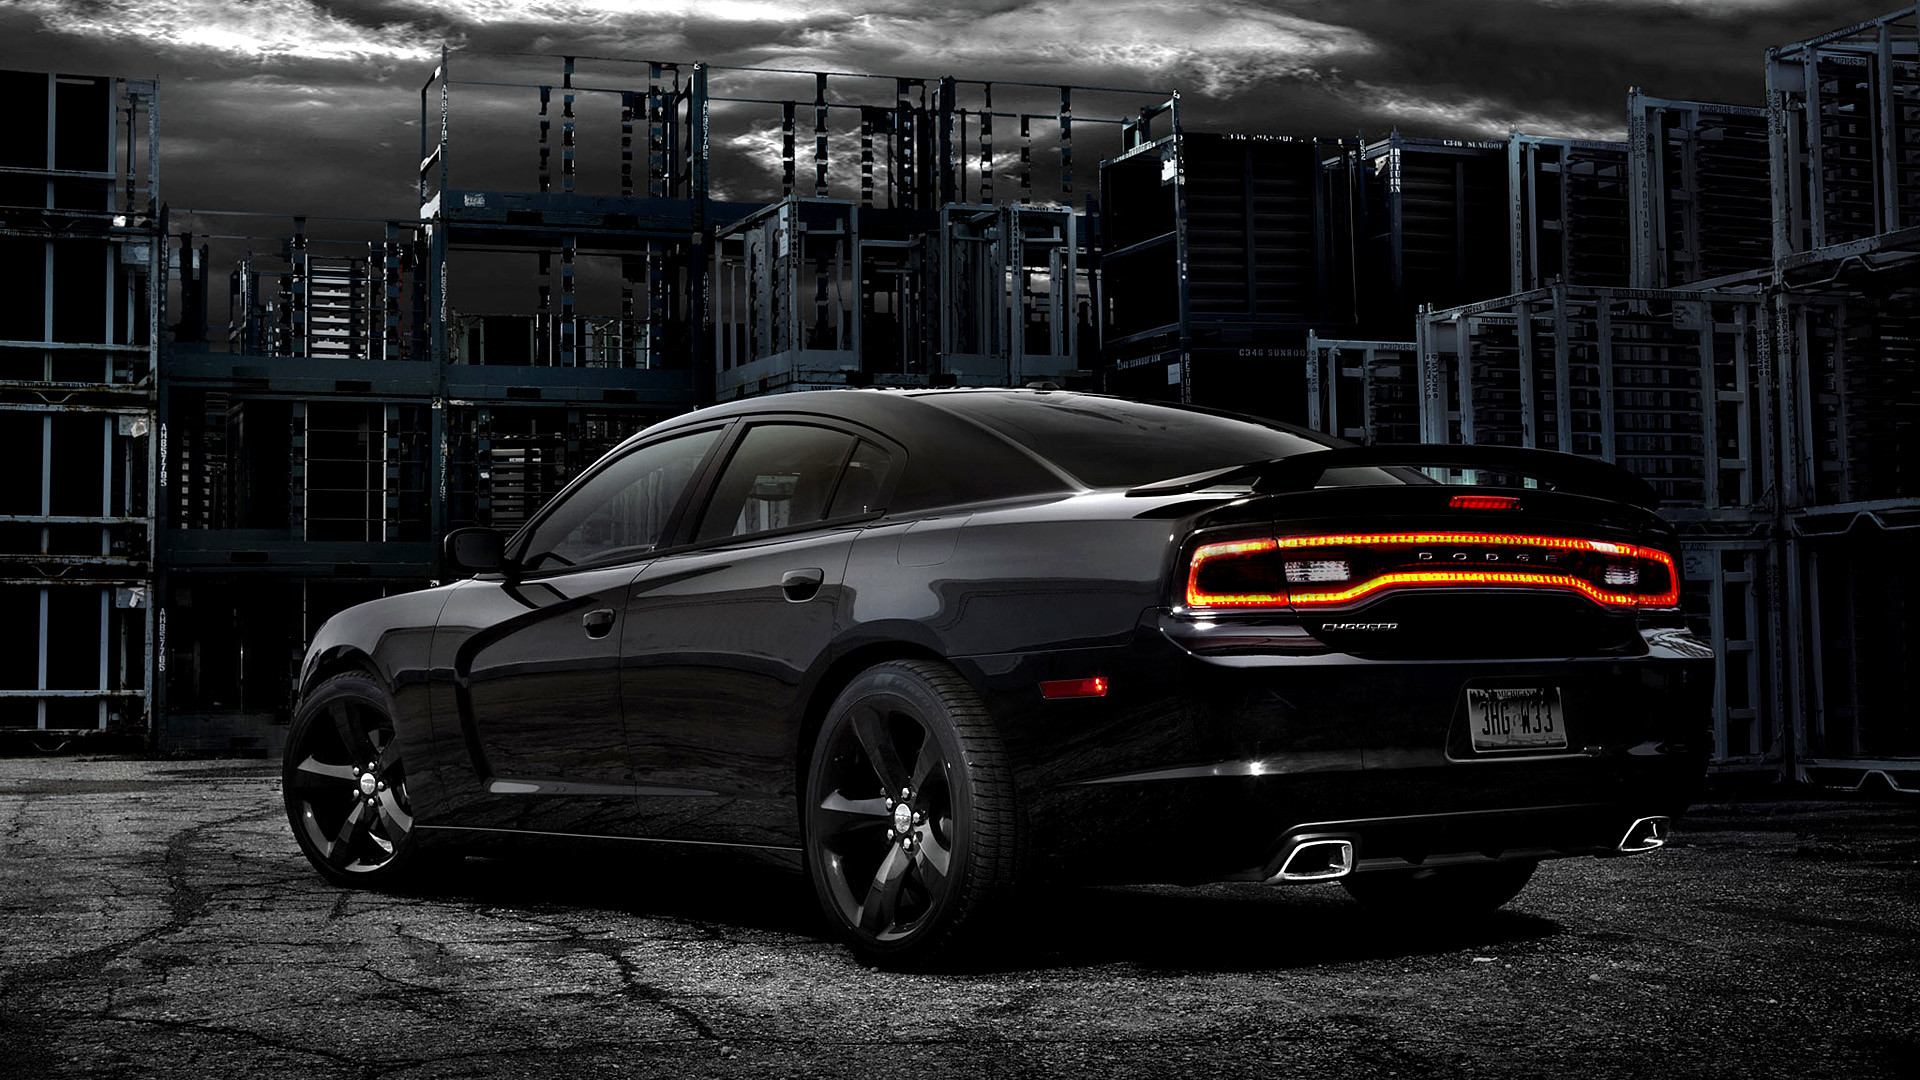 2018 Dodge Challenger Black Wallpapers 74 Background Pictures 2014 Wallpaper Cityconnectapps